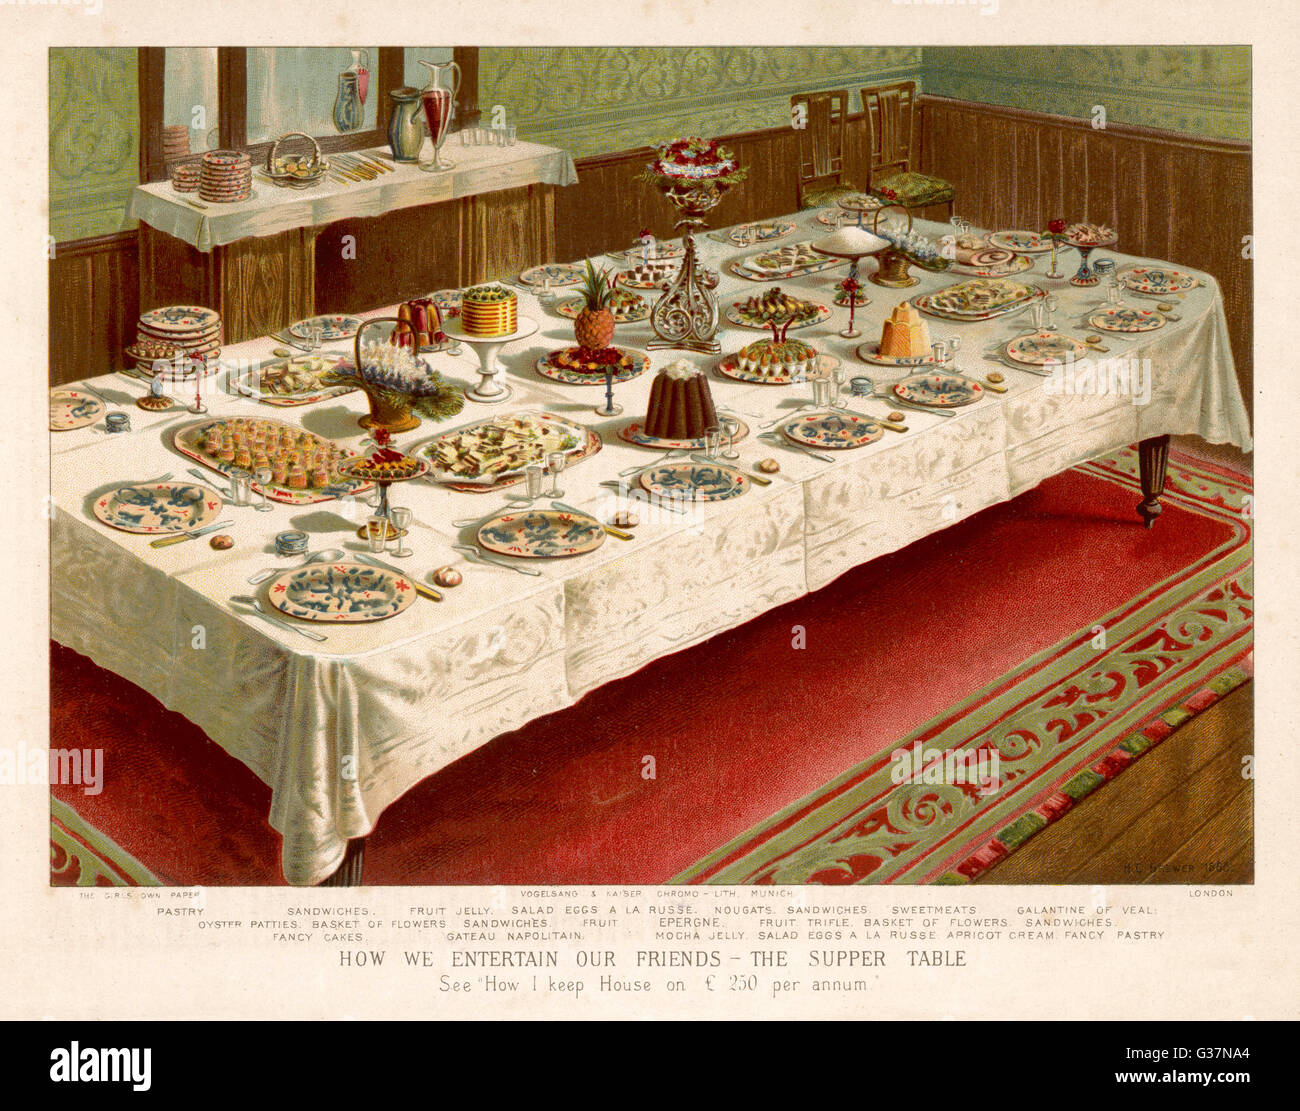 A SUPPER TABLE laid for 16 persons         Date: 1885 - Stock Image